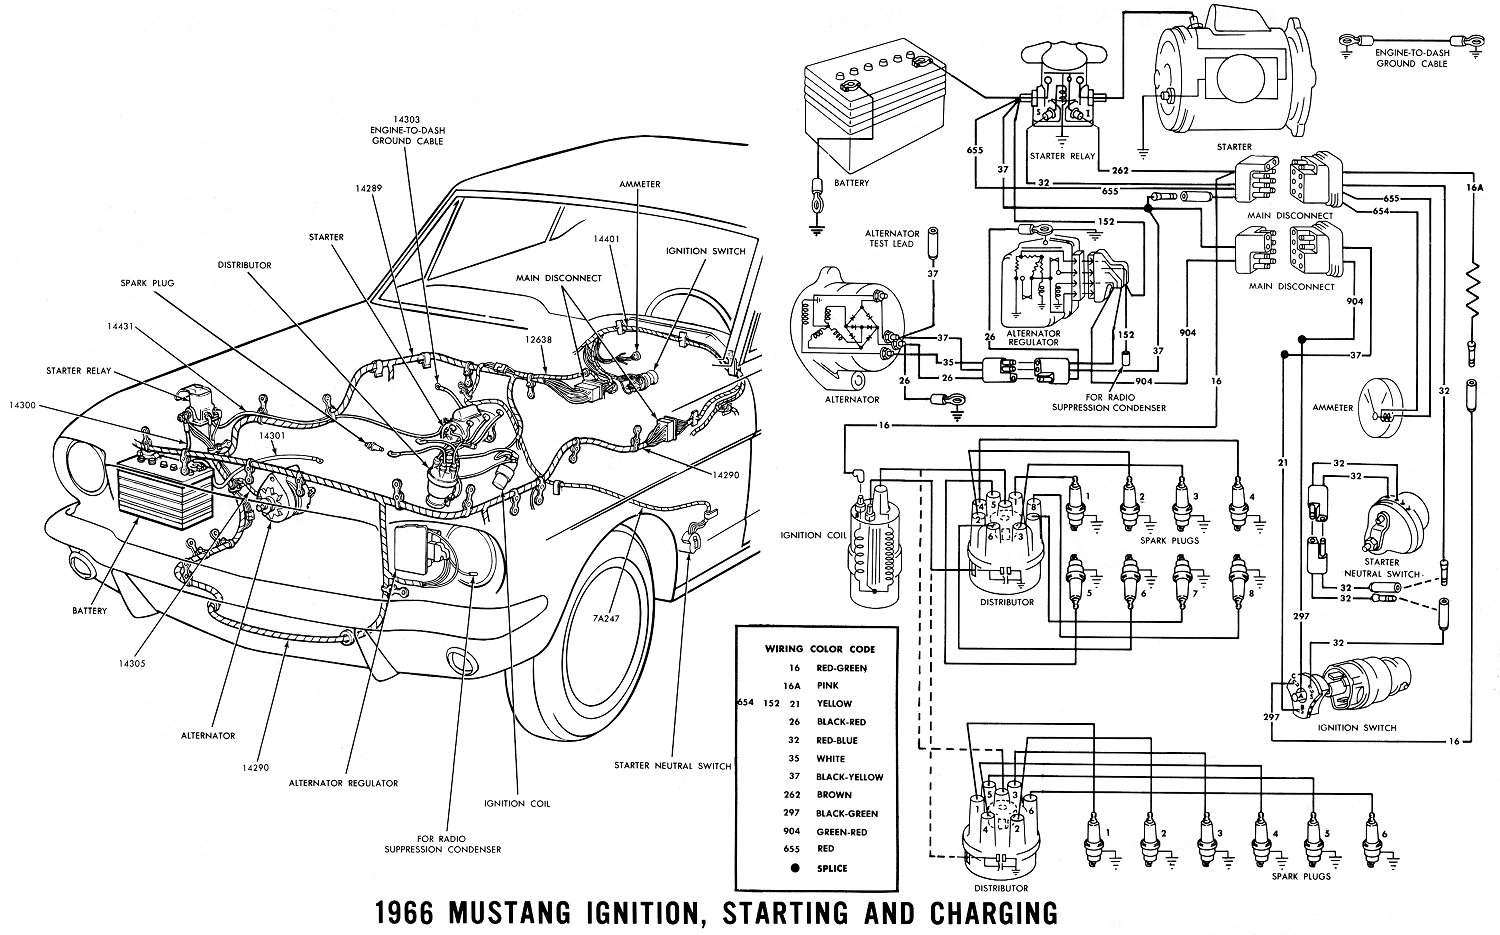 1966 mustang wiring diagrams average joe restoration1966 mustang ignition, starting and charging